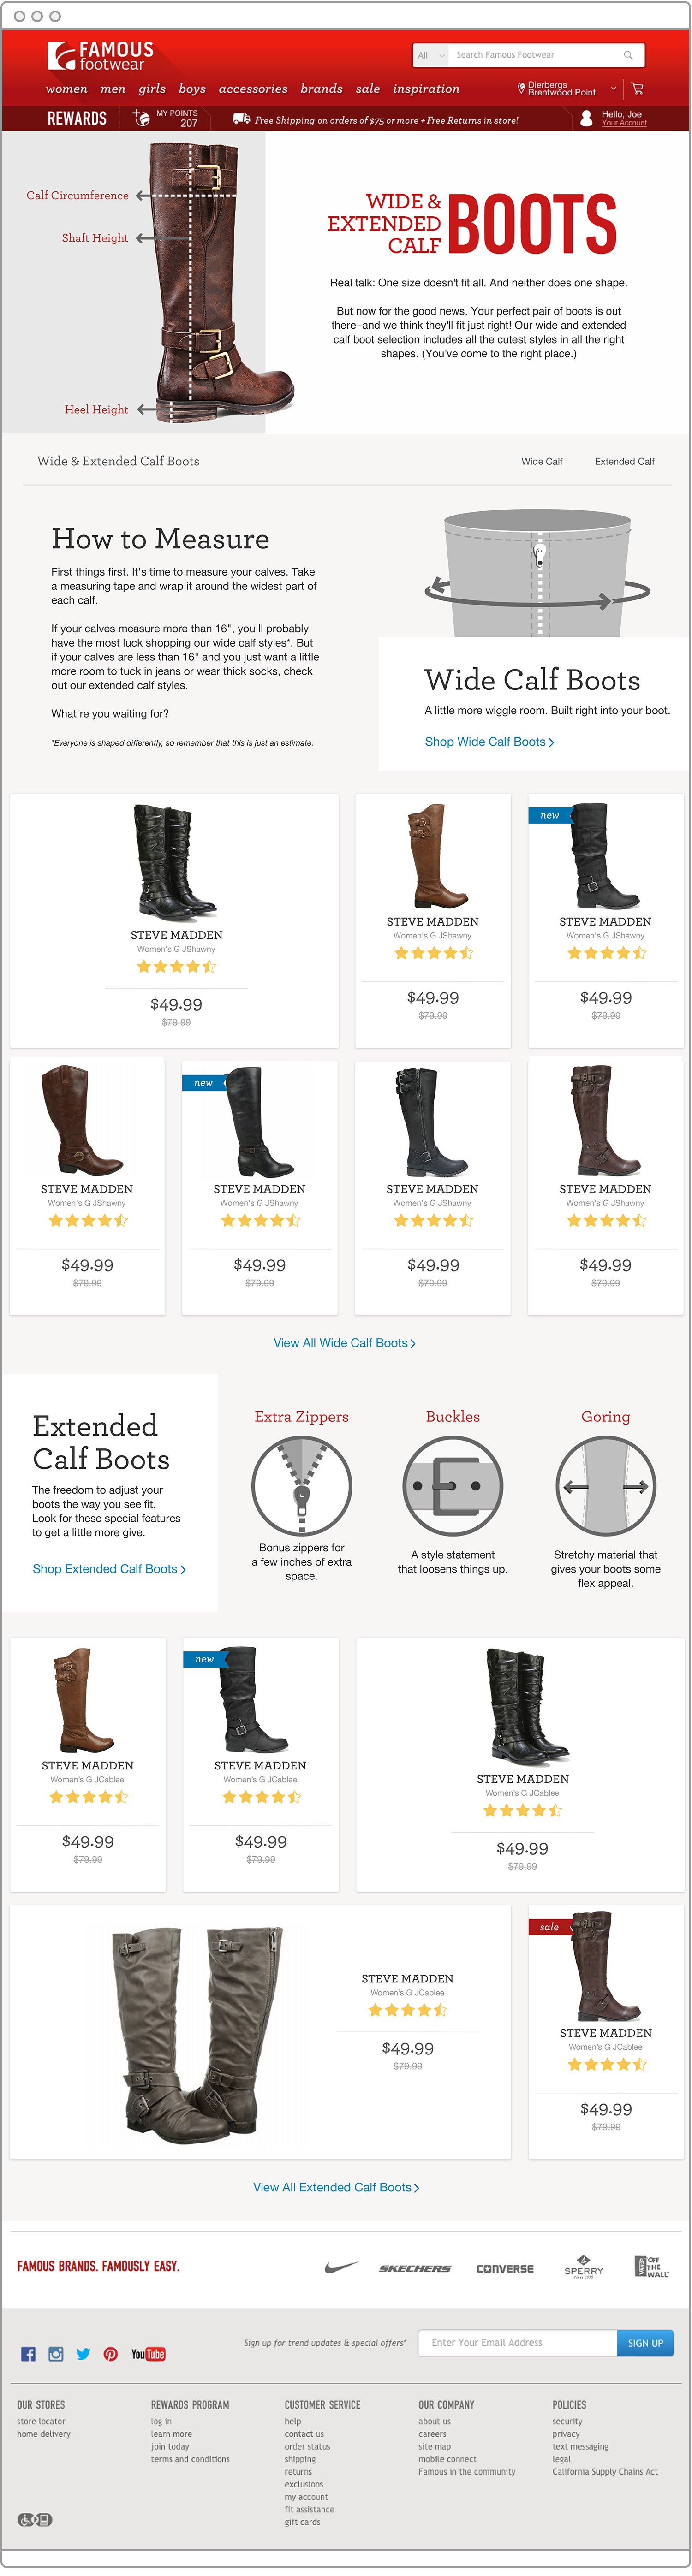 Wide Calf Boots Landing Page — Theresa